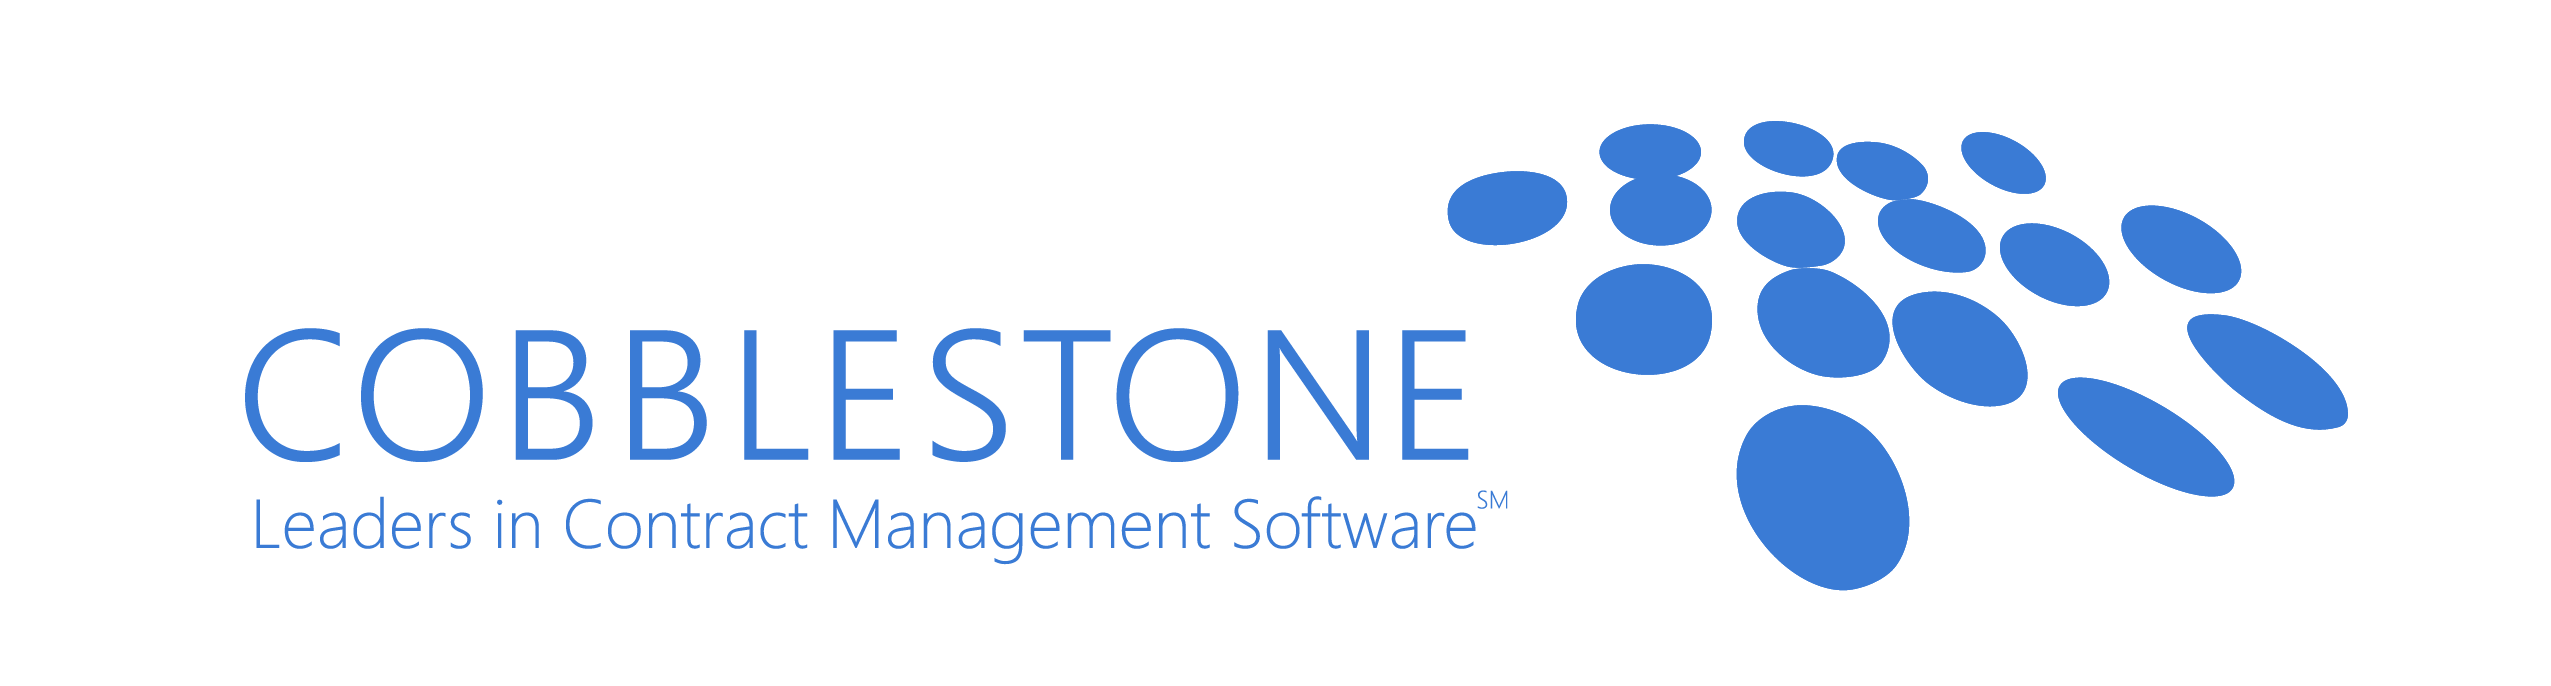 Education Contract Management Software | CobbleStone Software